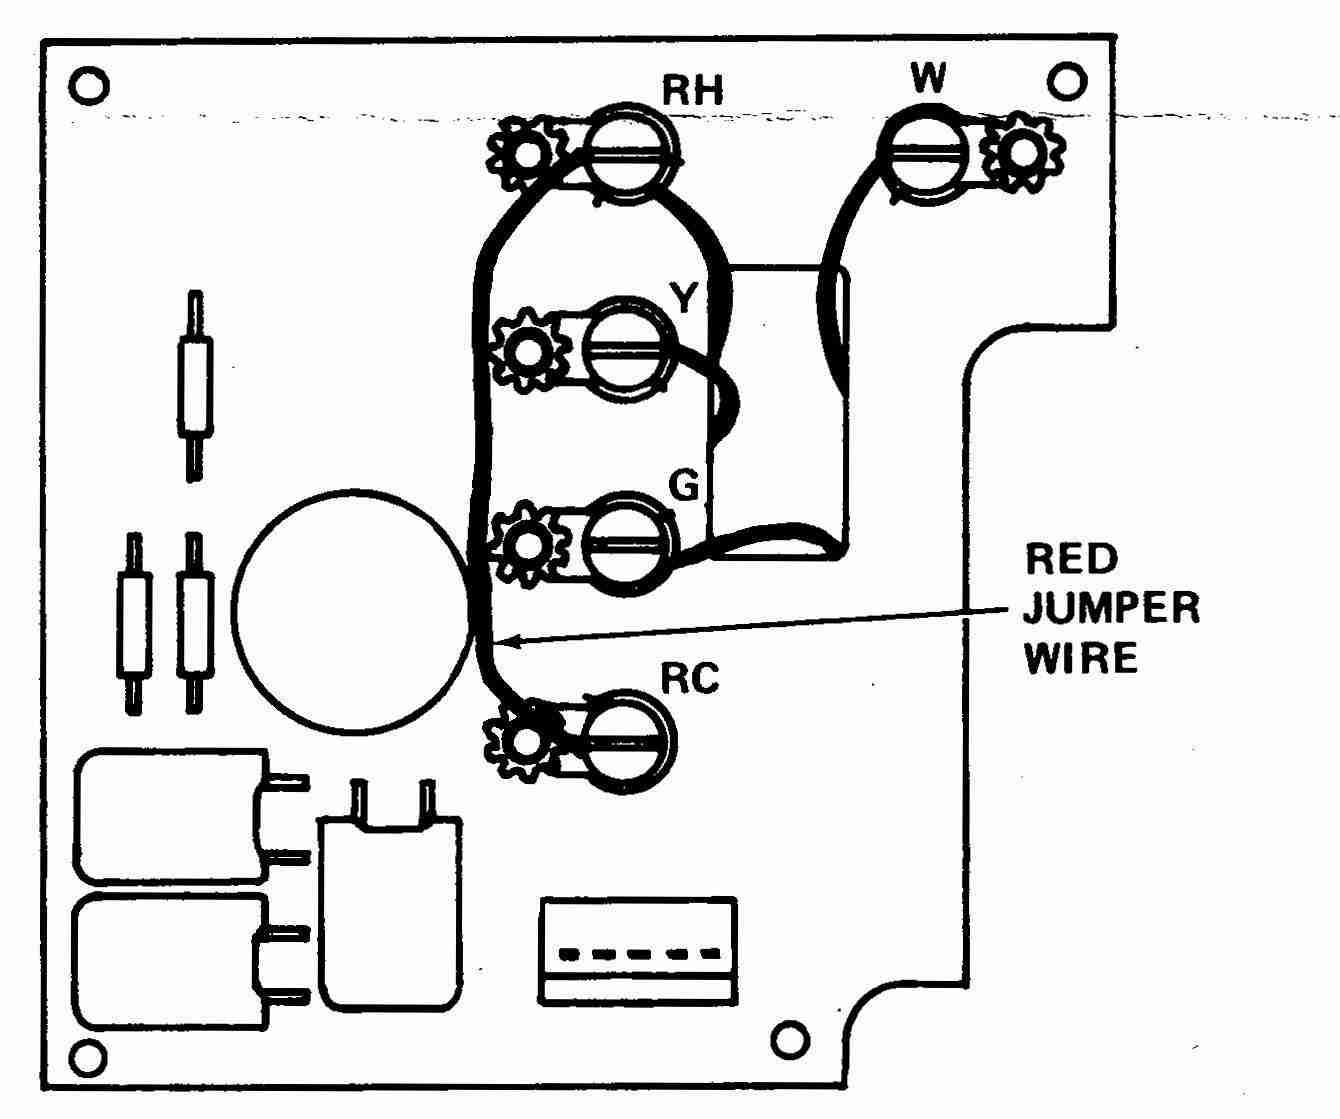 Electrical Wiring Diagrams Emerson Electric Motor Wiring Diagram With